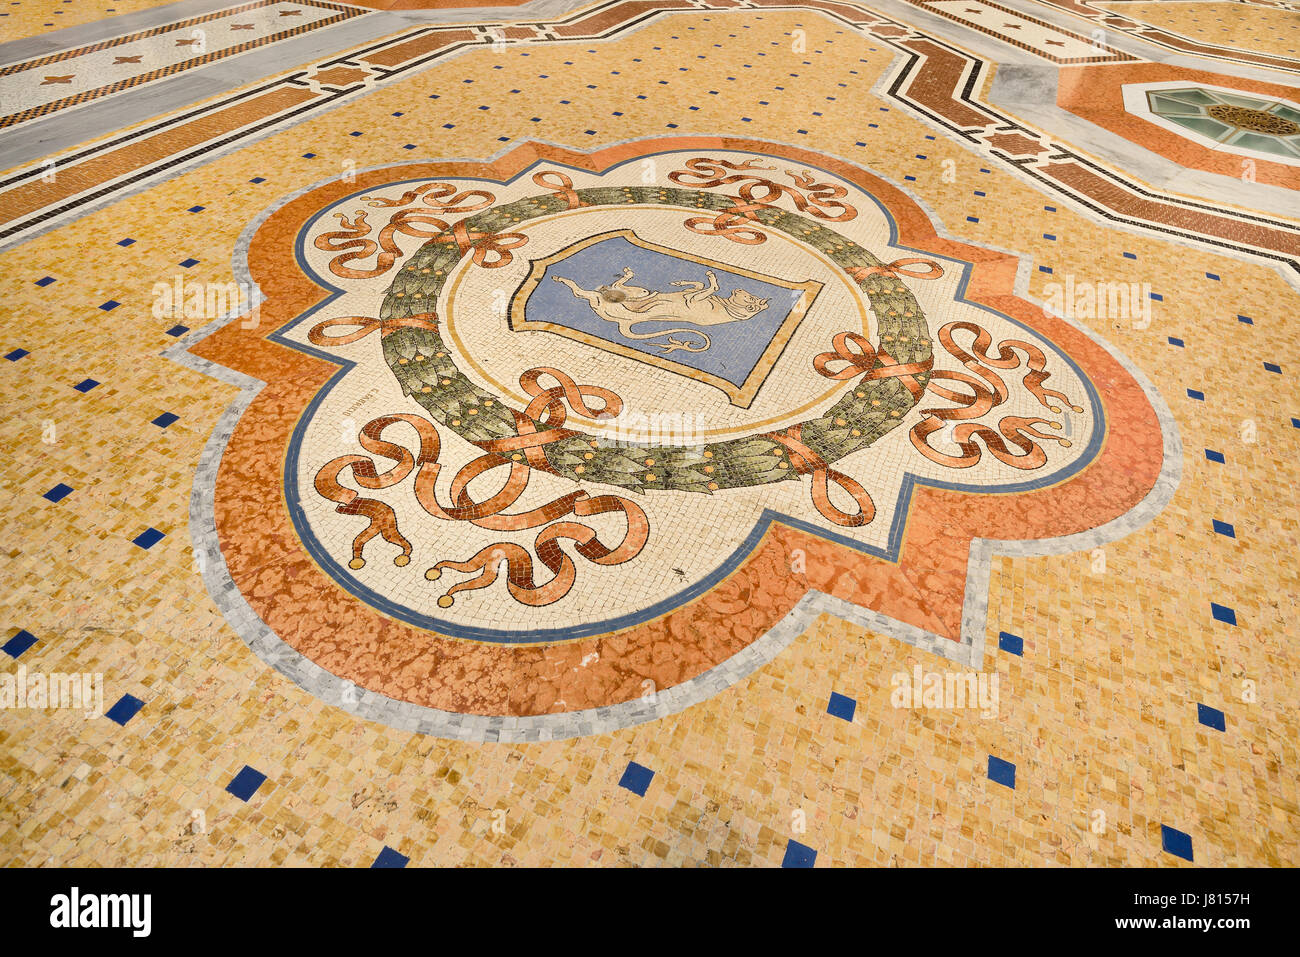 Italy, Lombardy, Milan. Galleria Vittorio Emanuele, Famous bull mosaic on the floor where tradition says that if - Stock Image